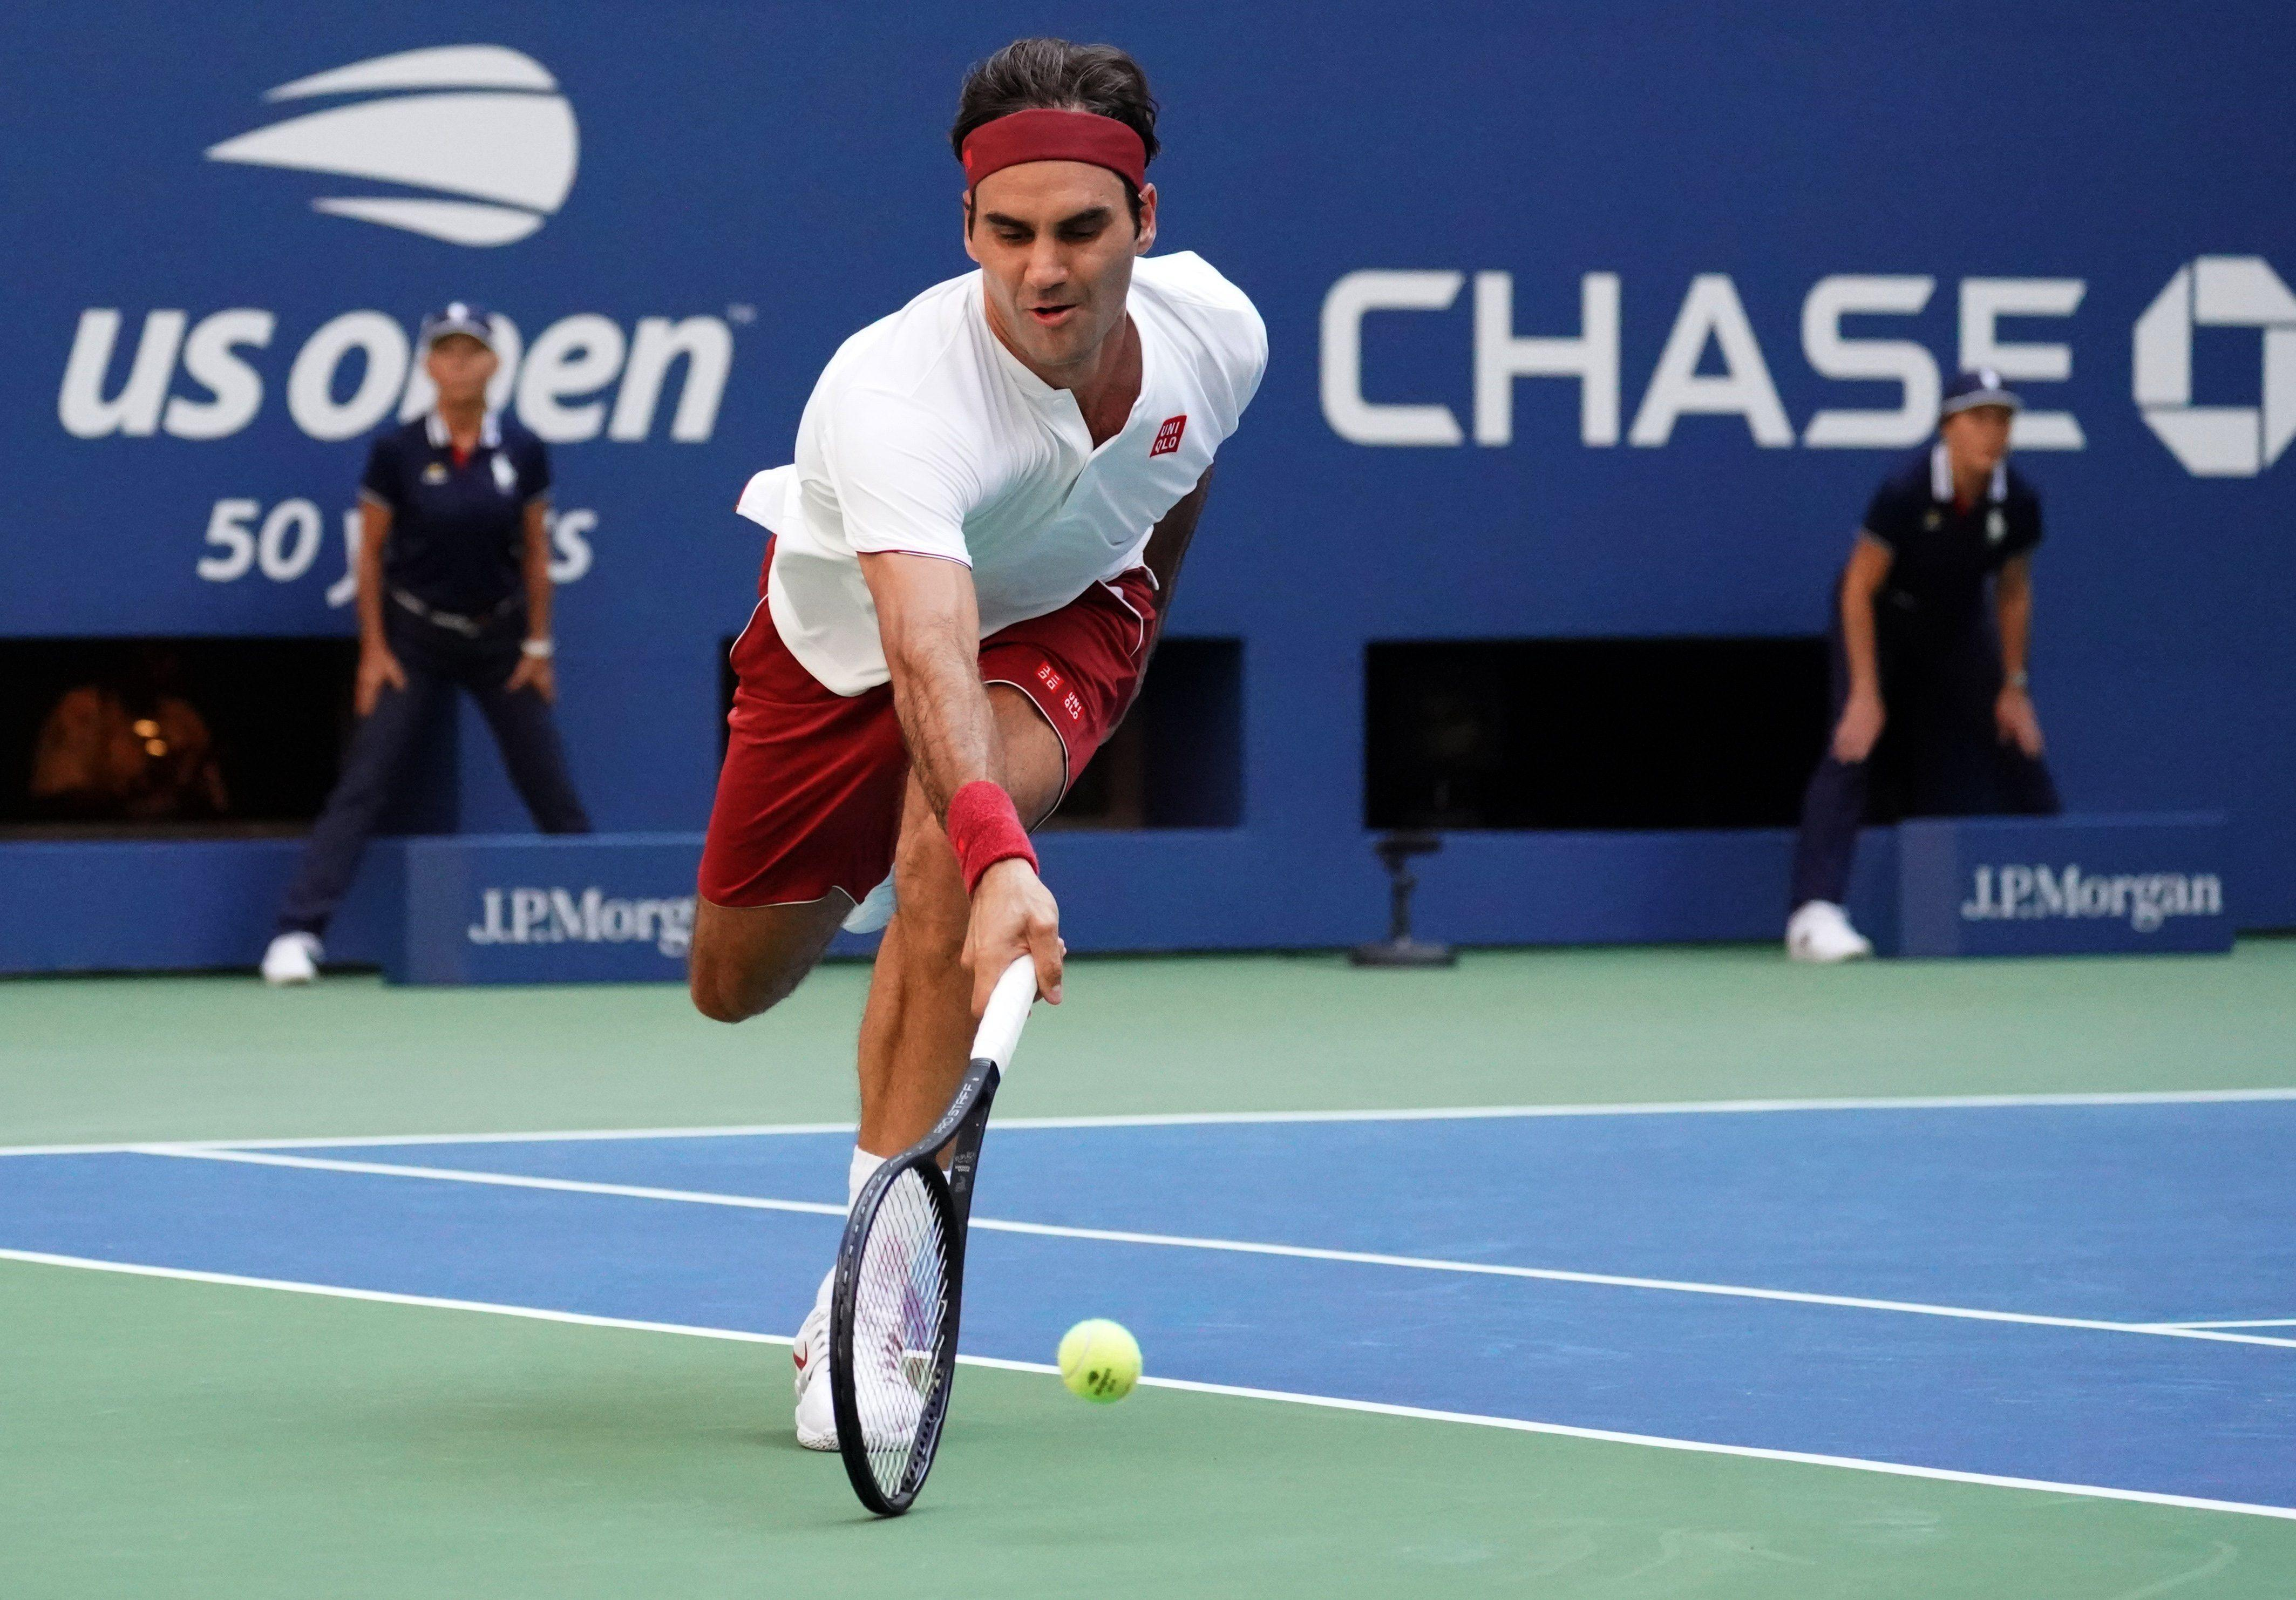 He then performed an exquisite flick around the net post for a clean winner